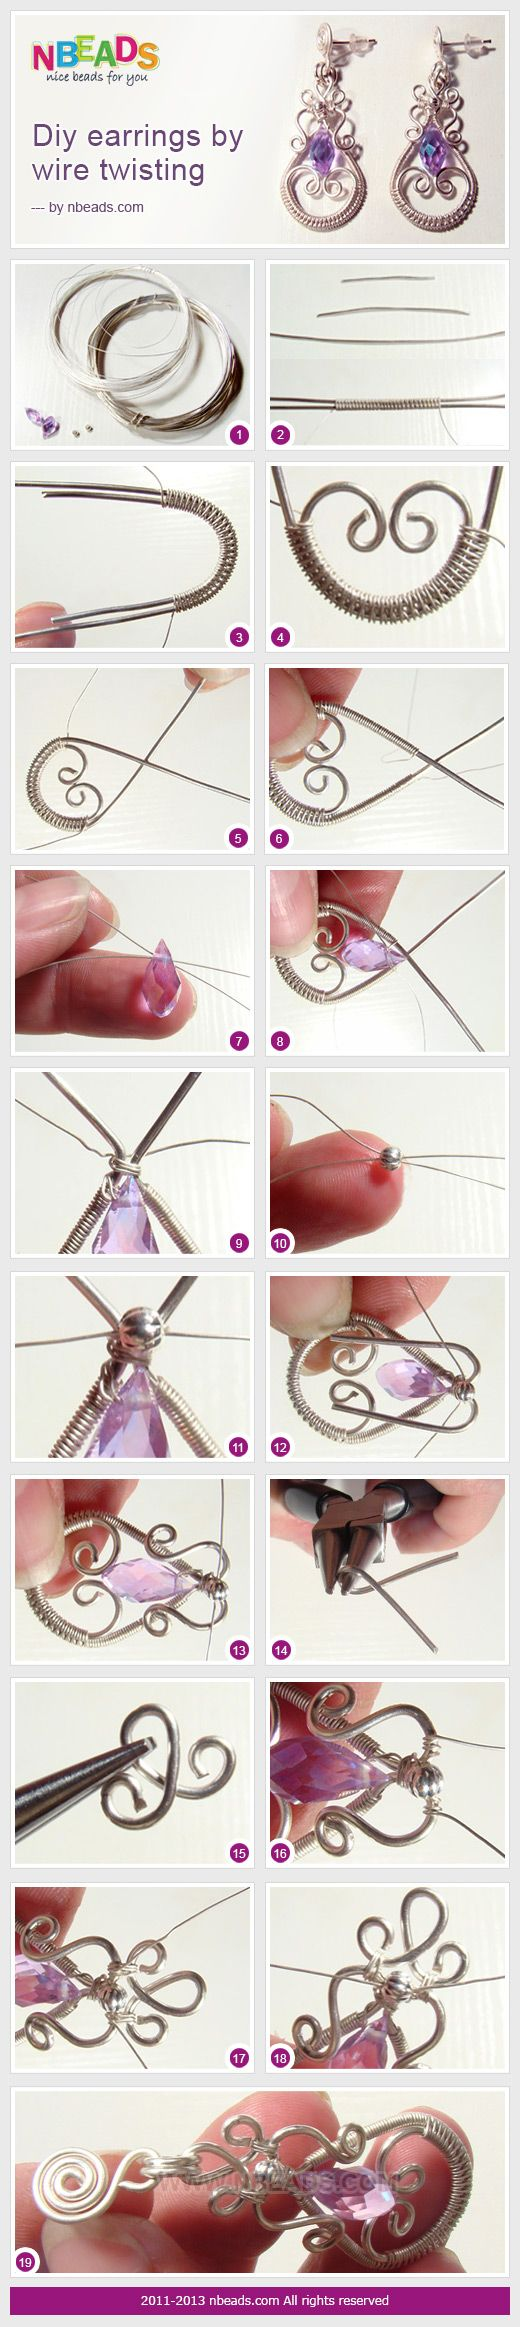 diy earrings by wire twisting  #Wire #Jewelry #Tutorials